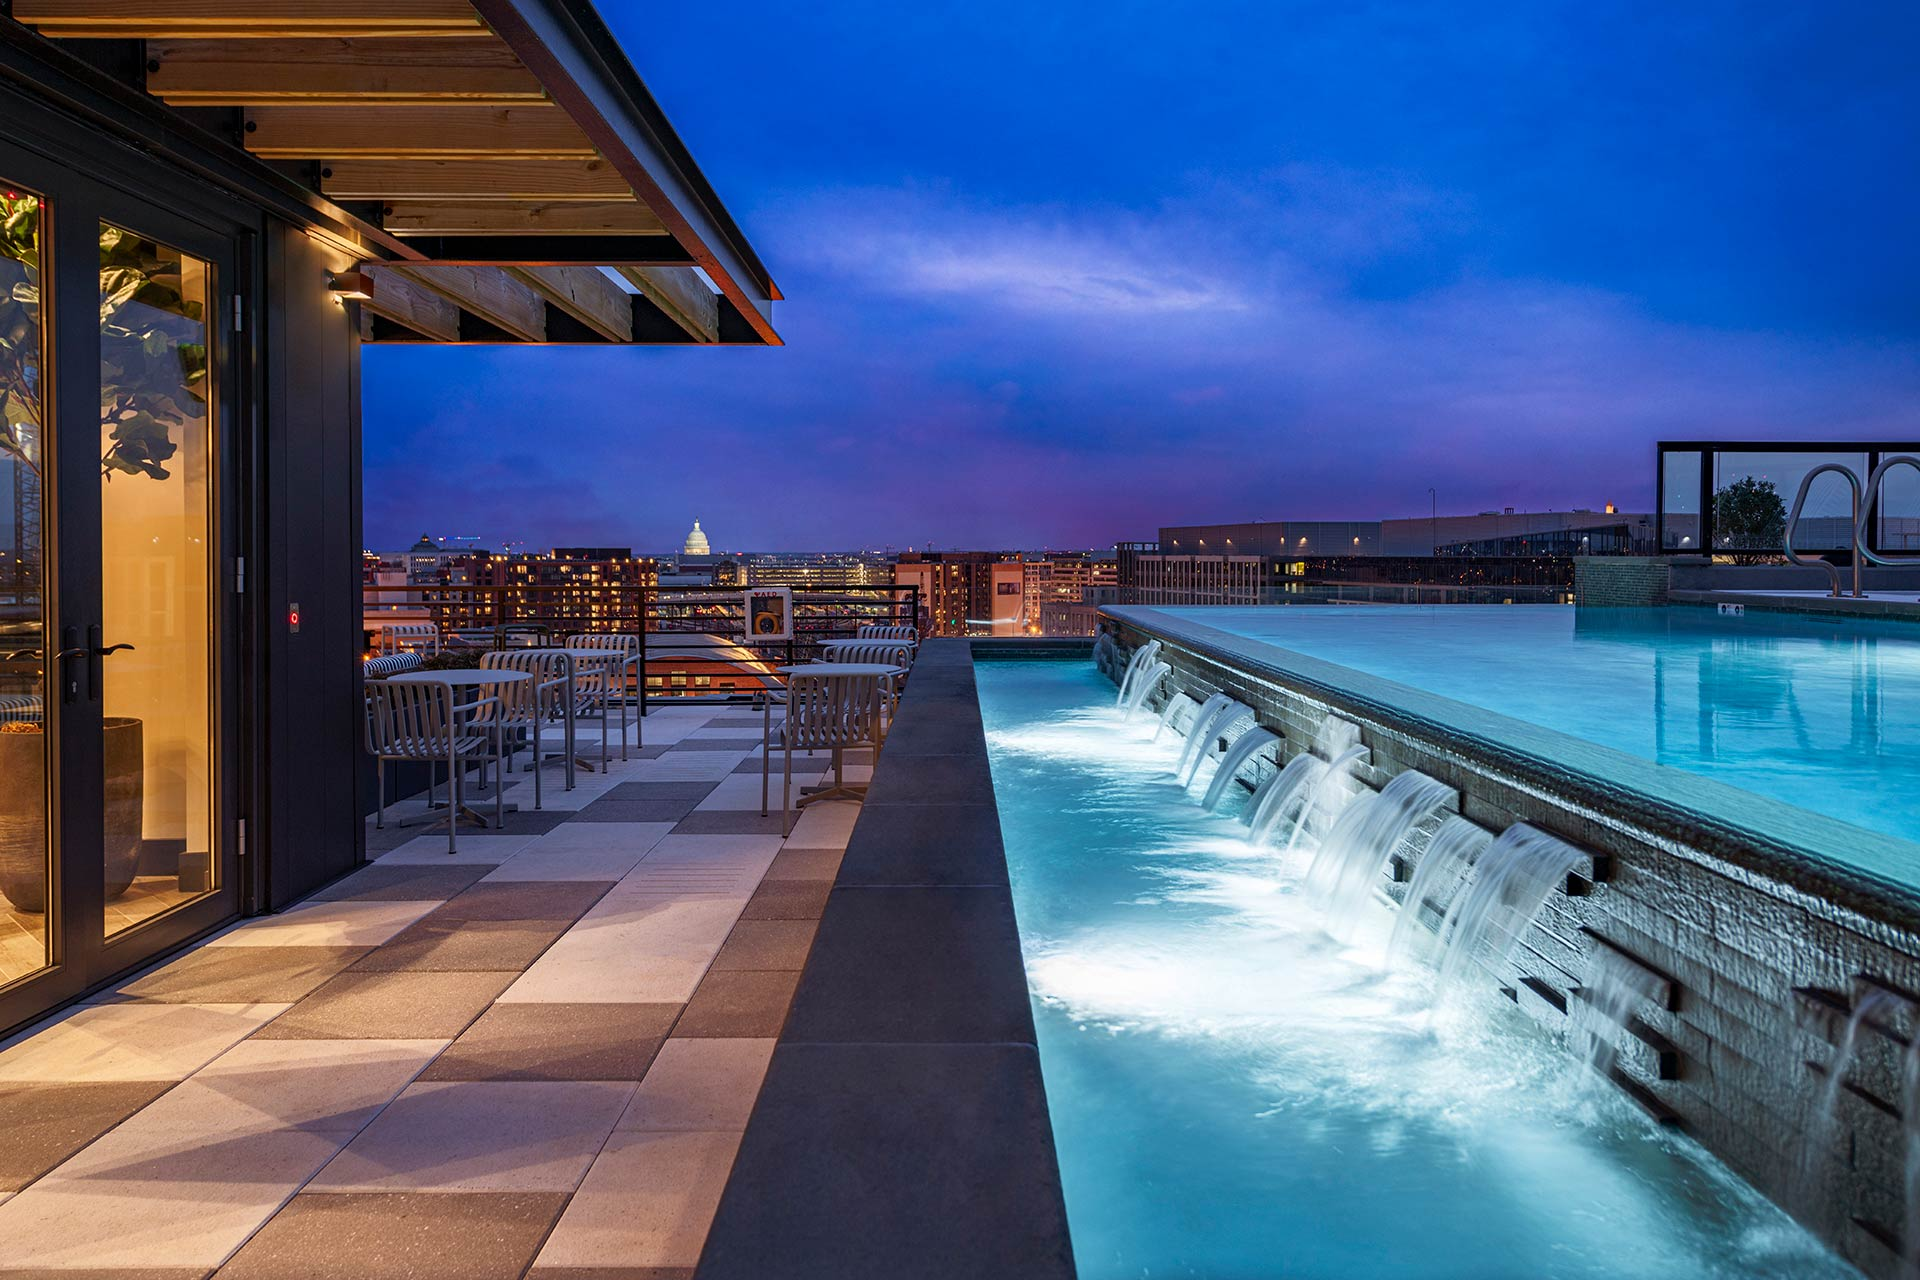 infinity pool with waterfall overlooking city at night